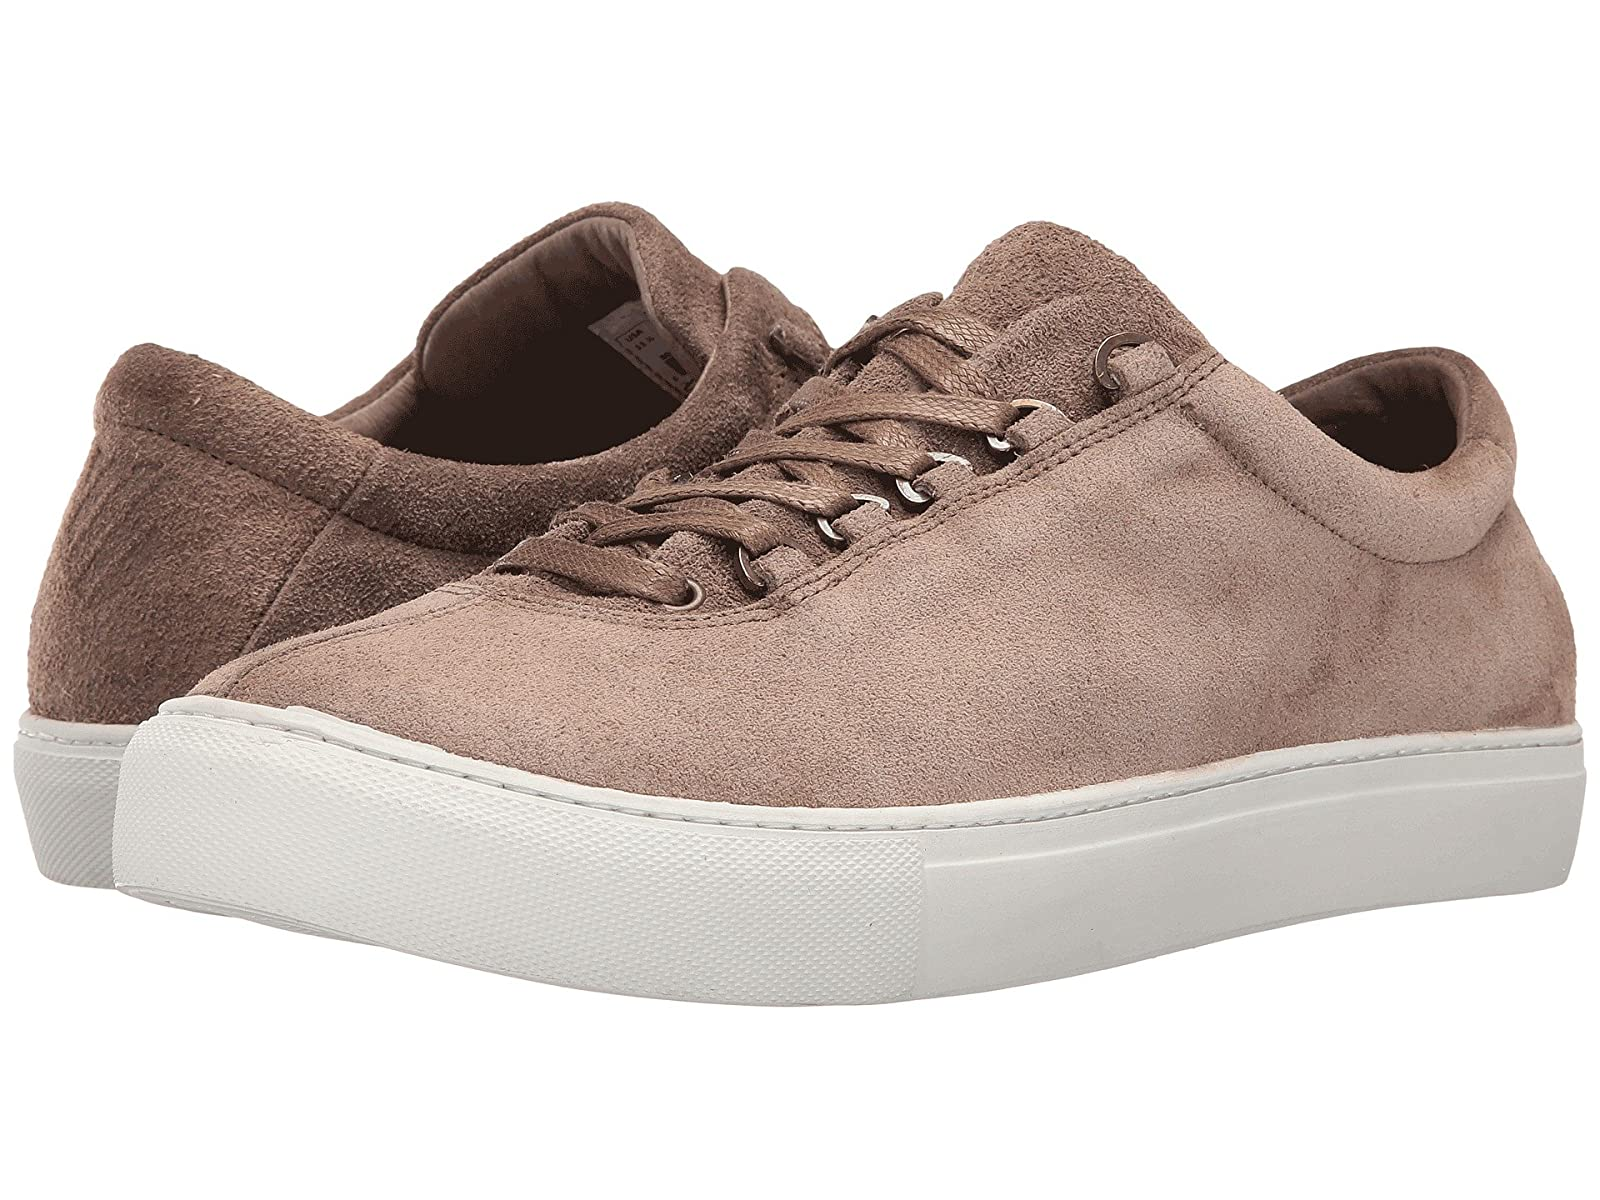 K-Swiss Court Classico SuedeCheap and distinctive eye-catching shoes